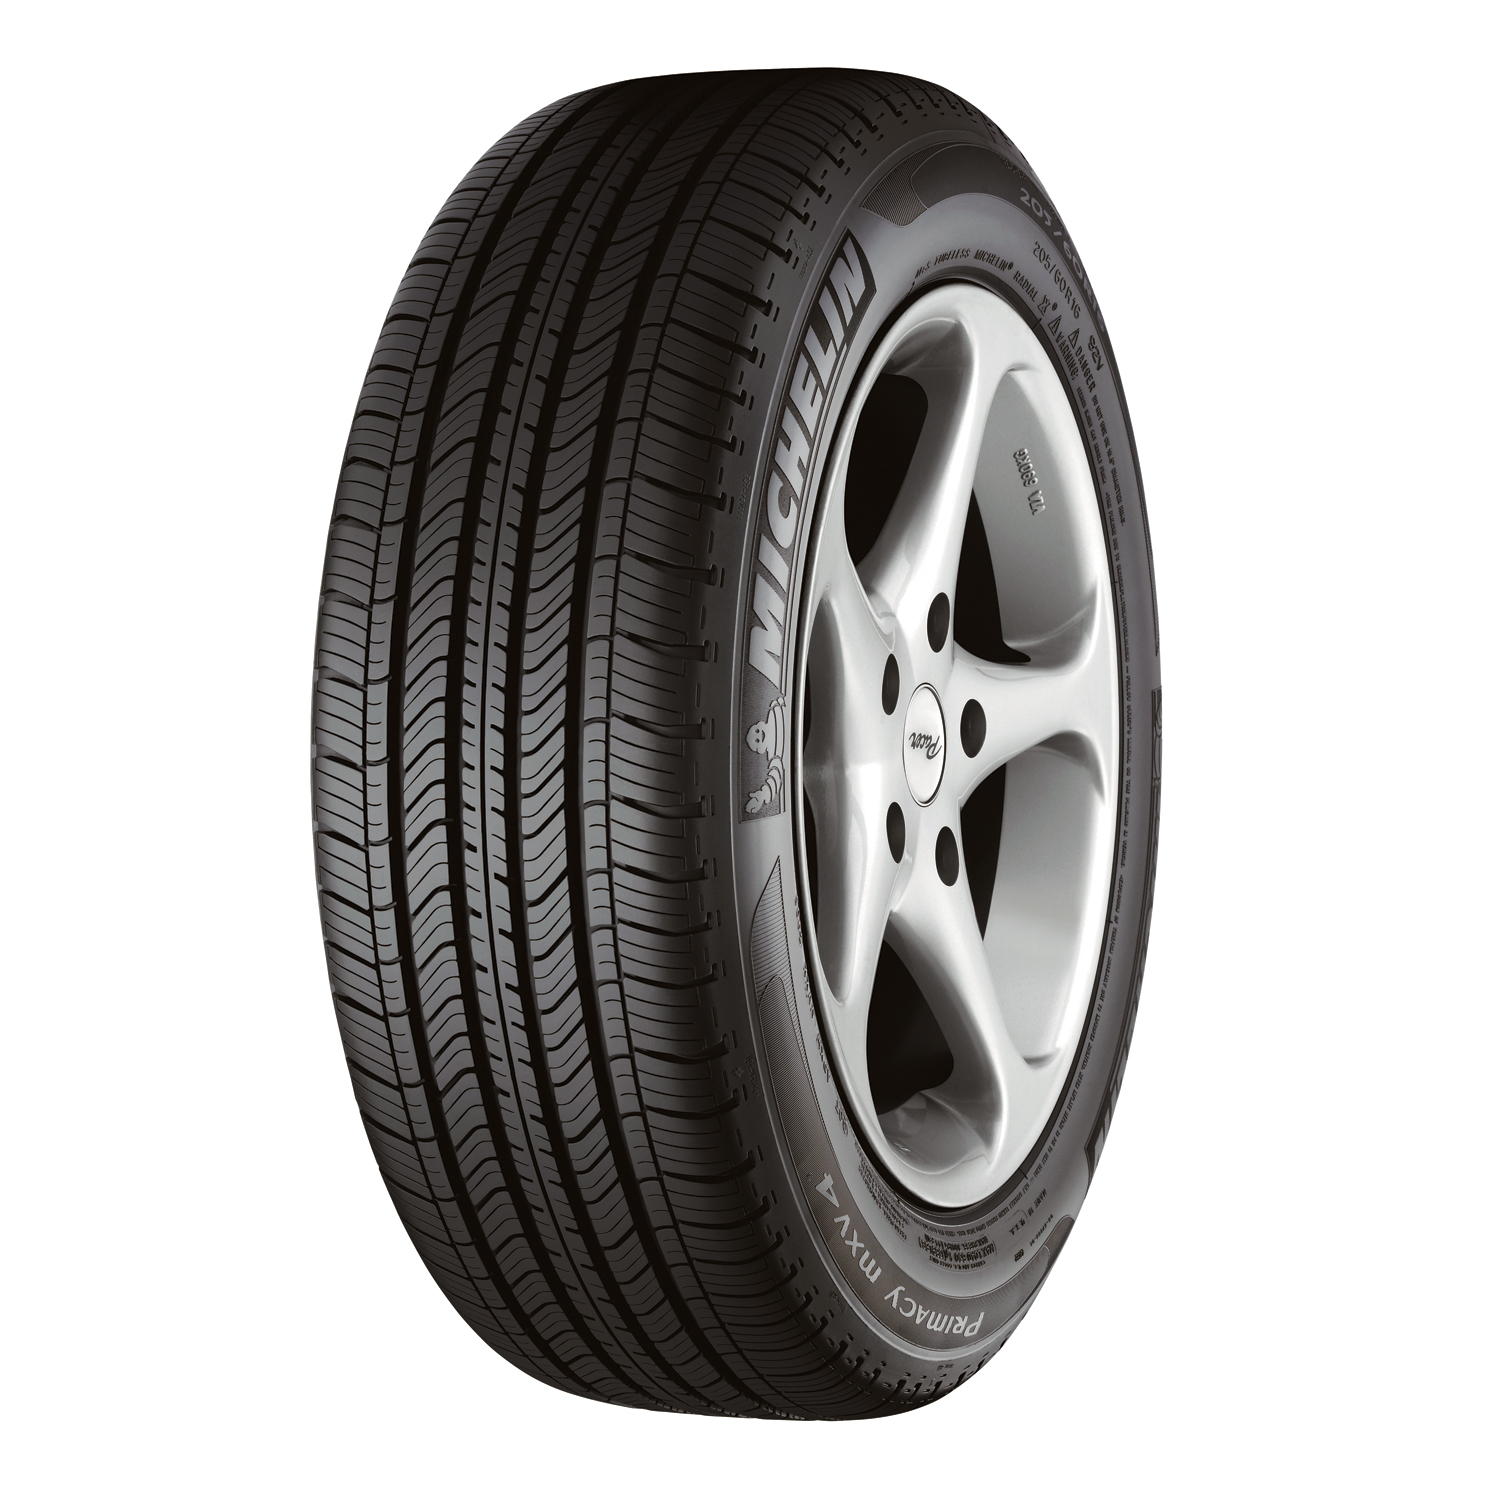 Michelin MXV4 gumiabroncs